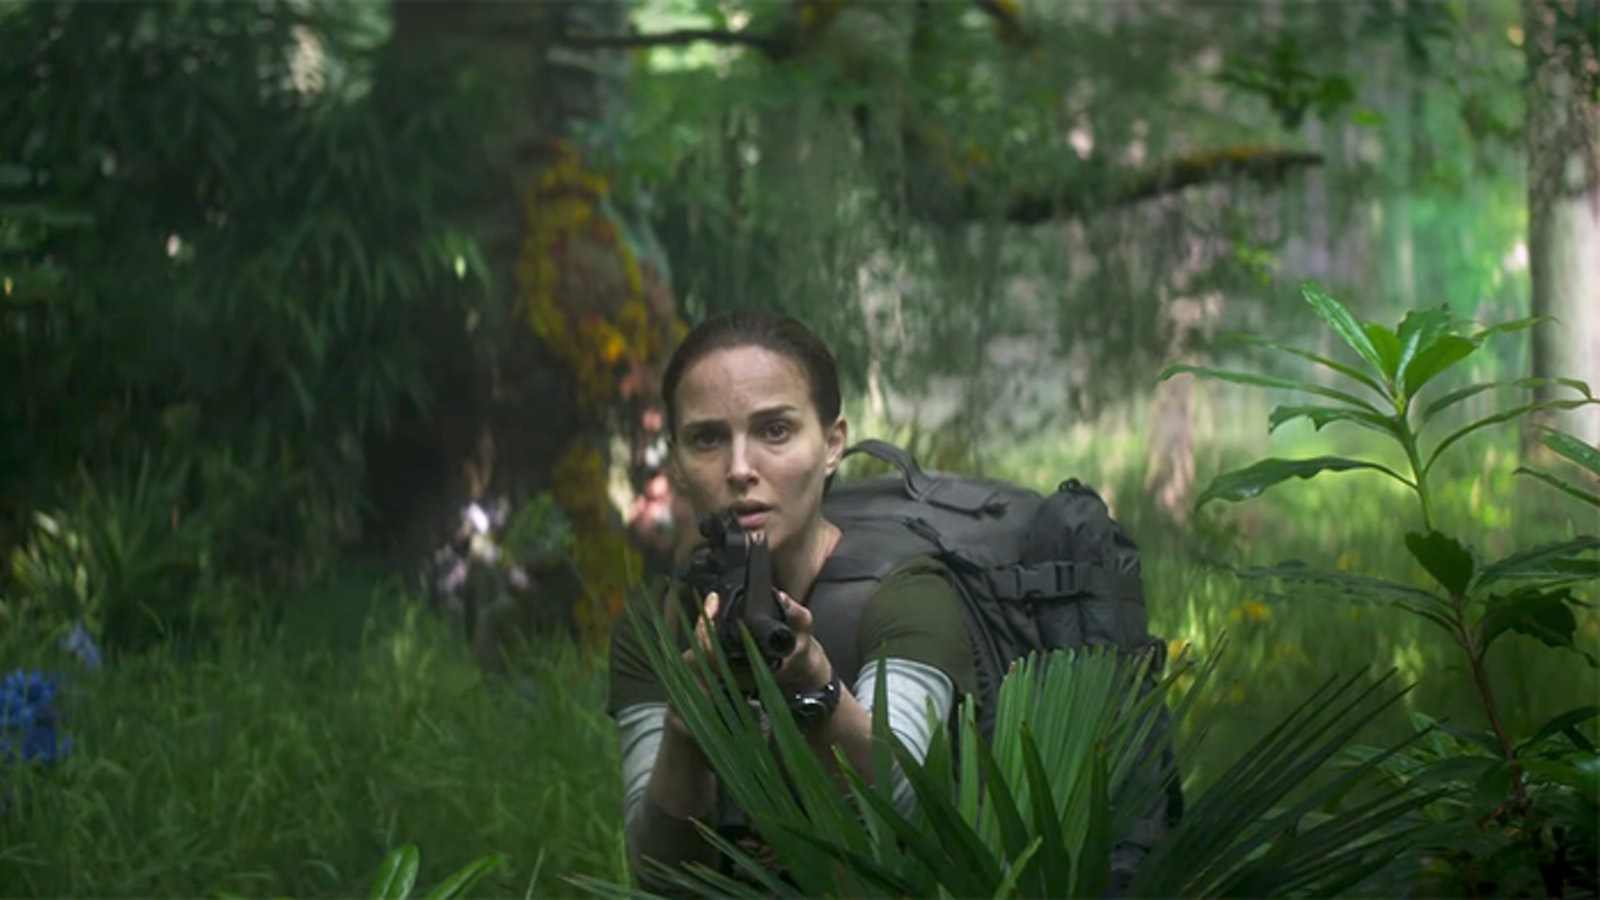 Annihilation & the garden